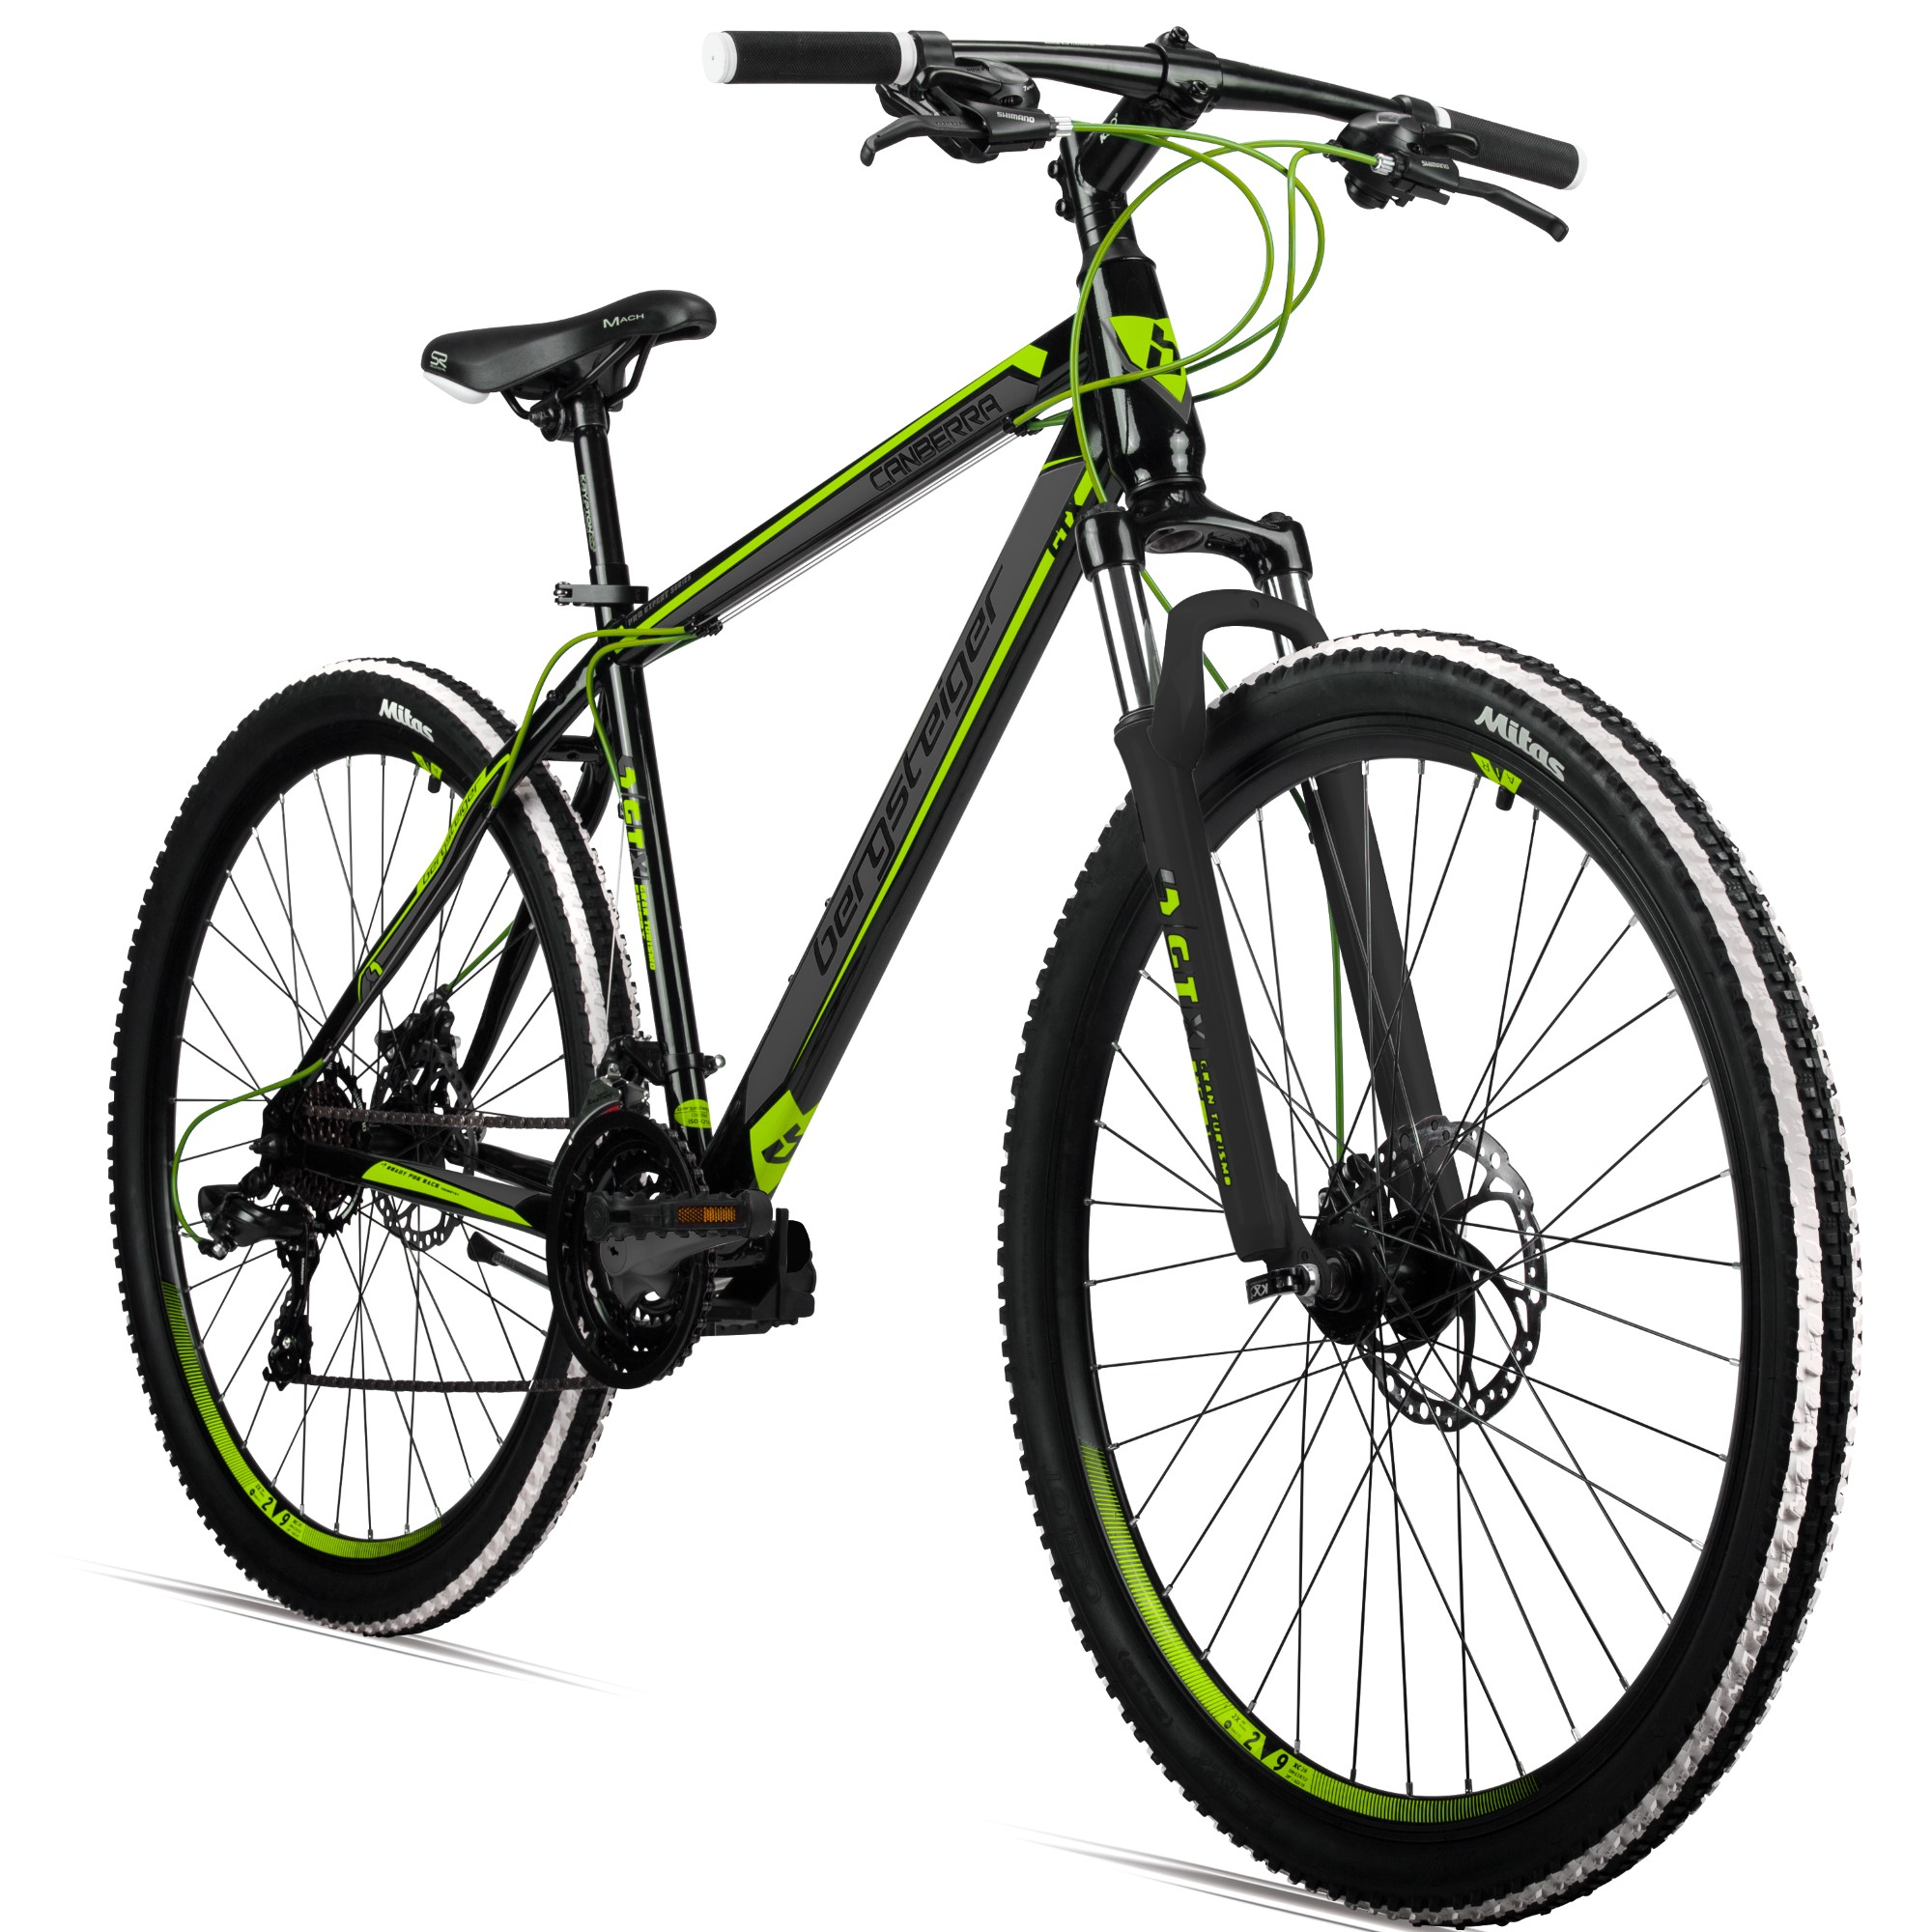 26 mountainbike canberra bergsteiger fahrr der mountainbikes citybikes kinderfahrr der. Black Bedroom Furniture Sets. Home Design Ideas